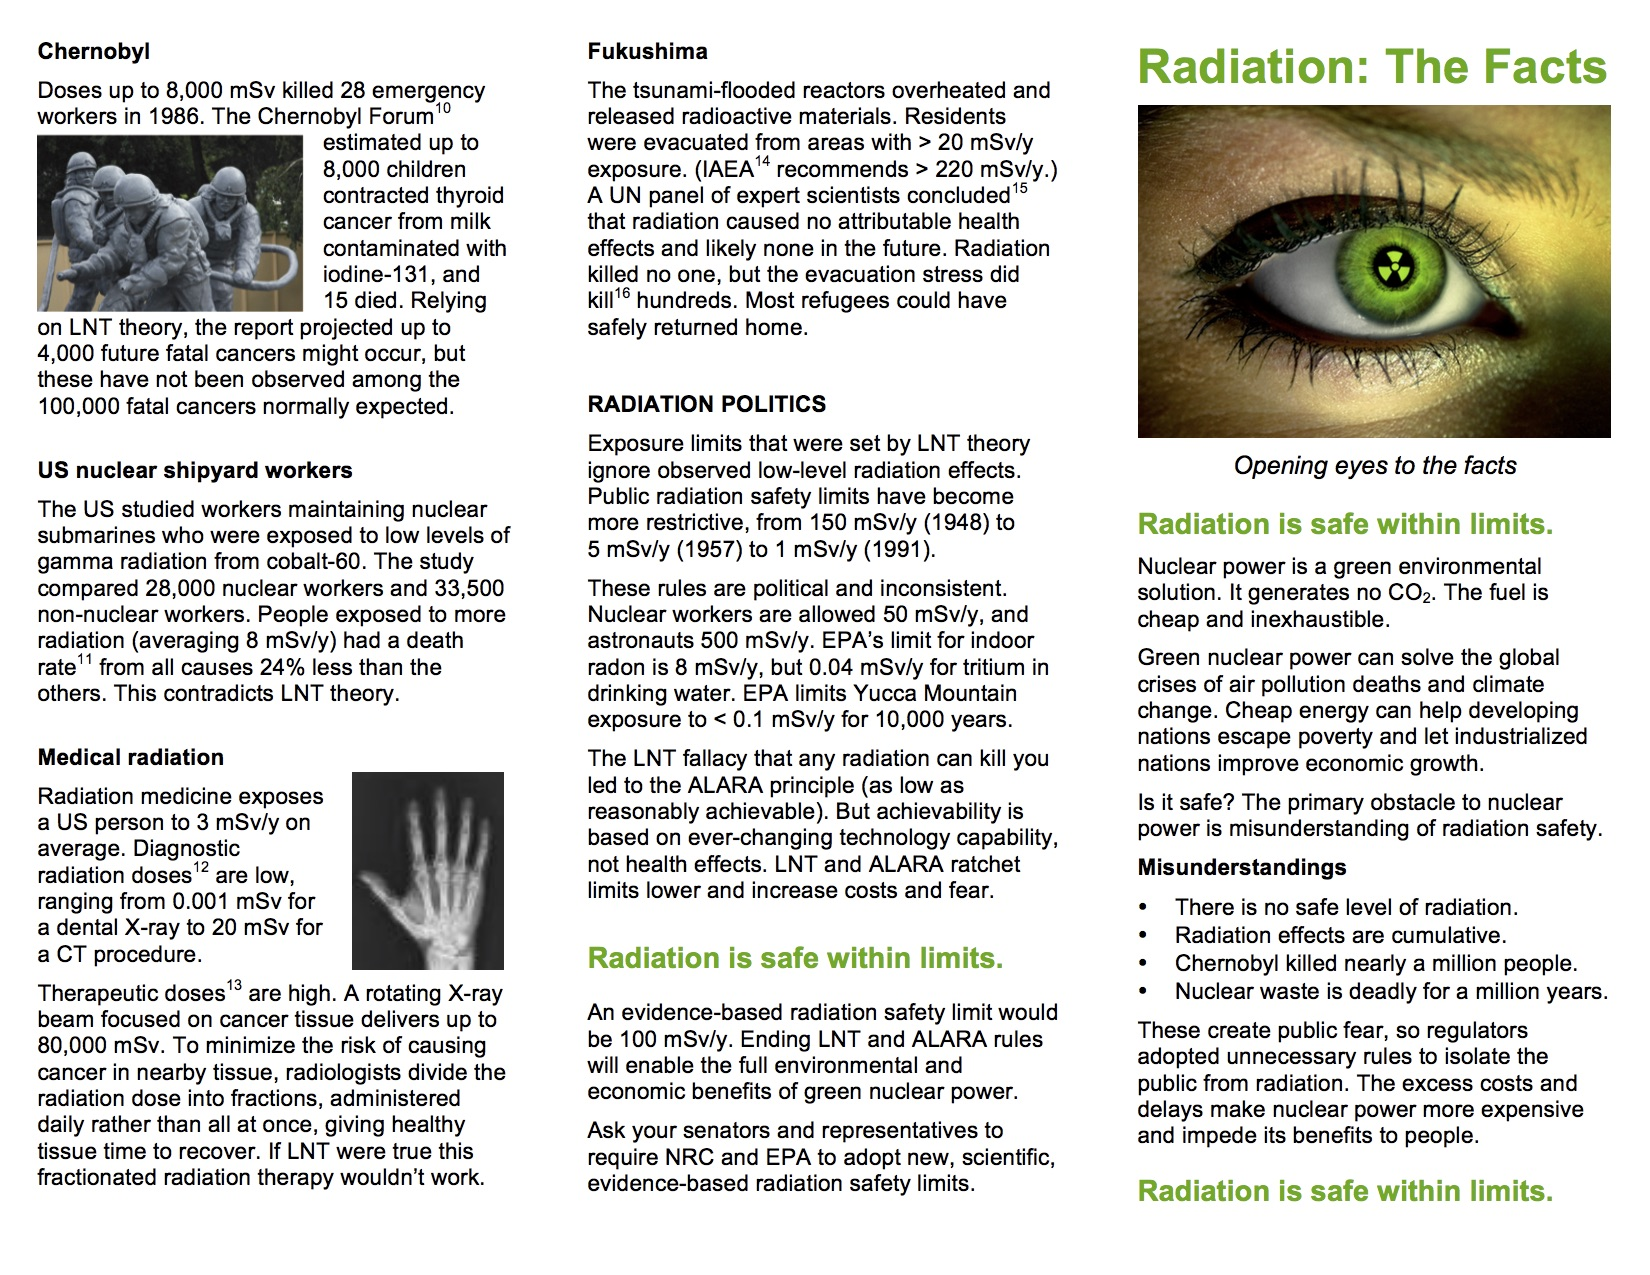 Getting More Brochures Radiation The Facts